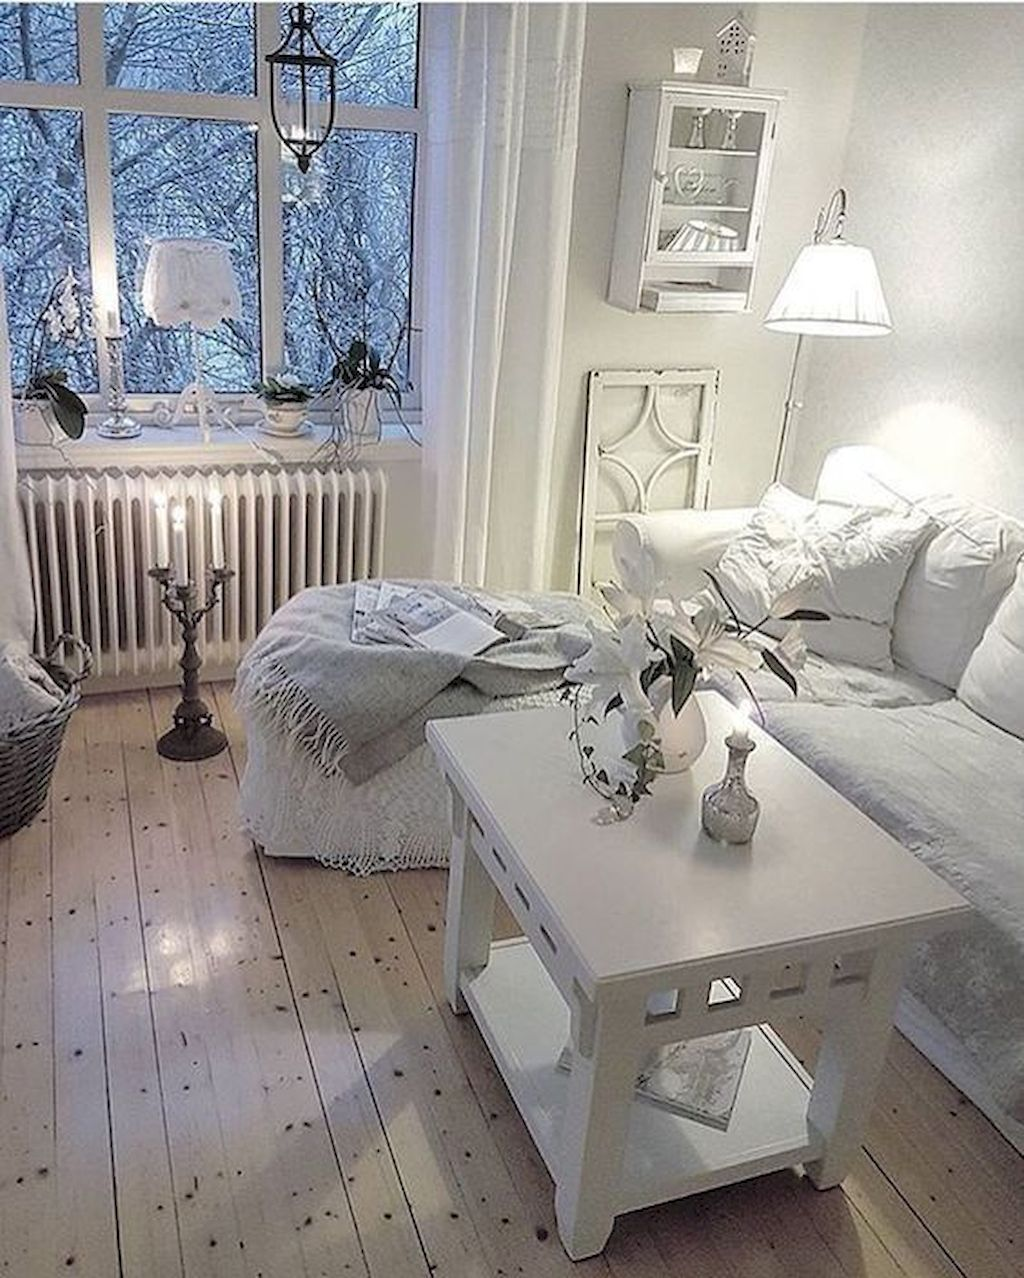 33 Sweet Shabby Chic Bedroom Décor Ideas: Romantic Shabby Chic Bedroom Decor And Furniture